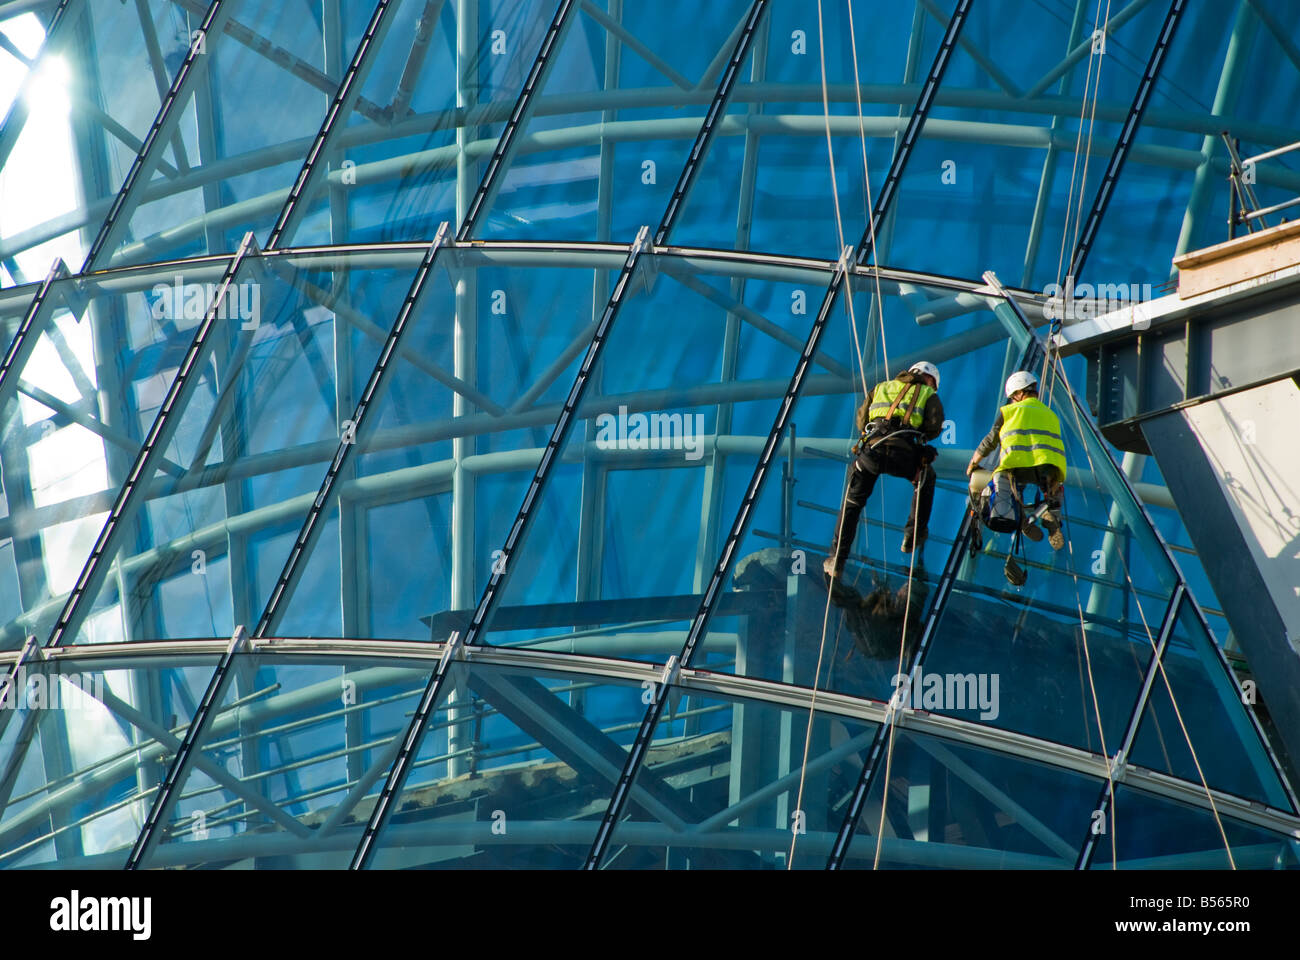 Teams of construction engineers working on the glazing of the new National Conference Center on North Wall Quay - Stock Image